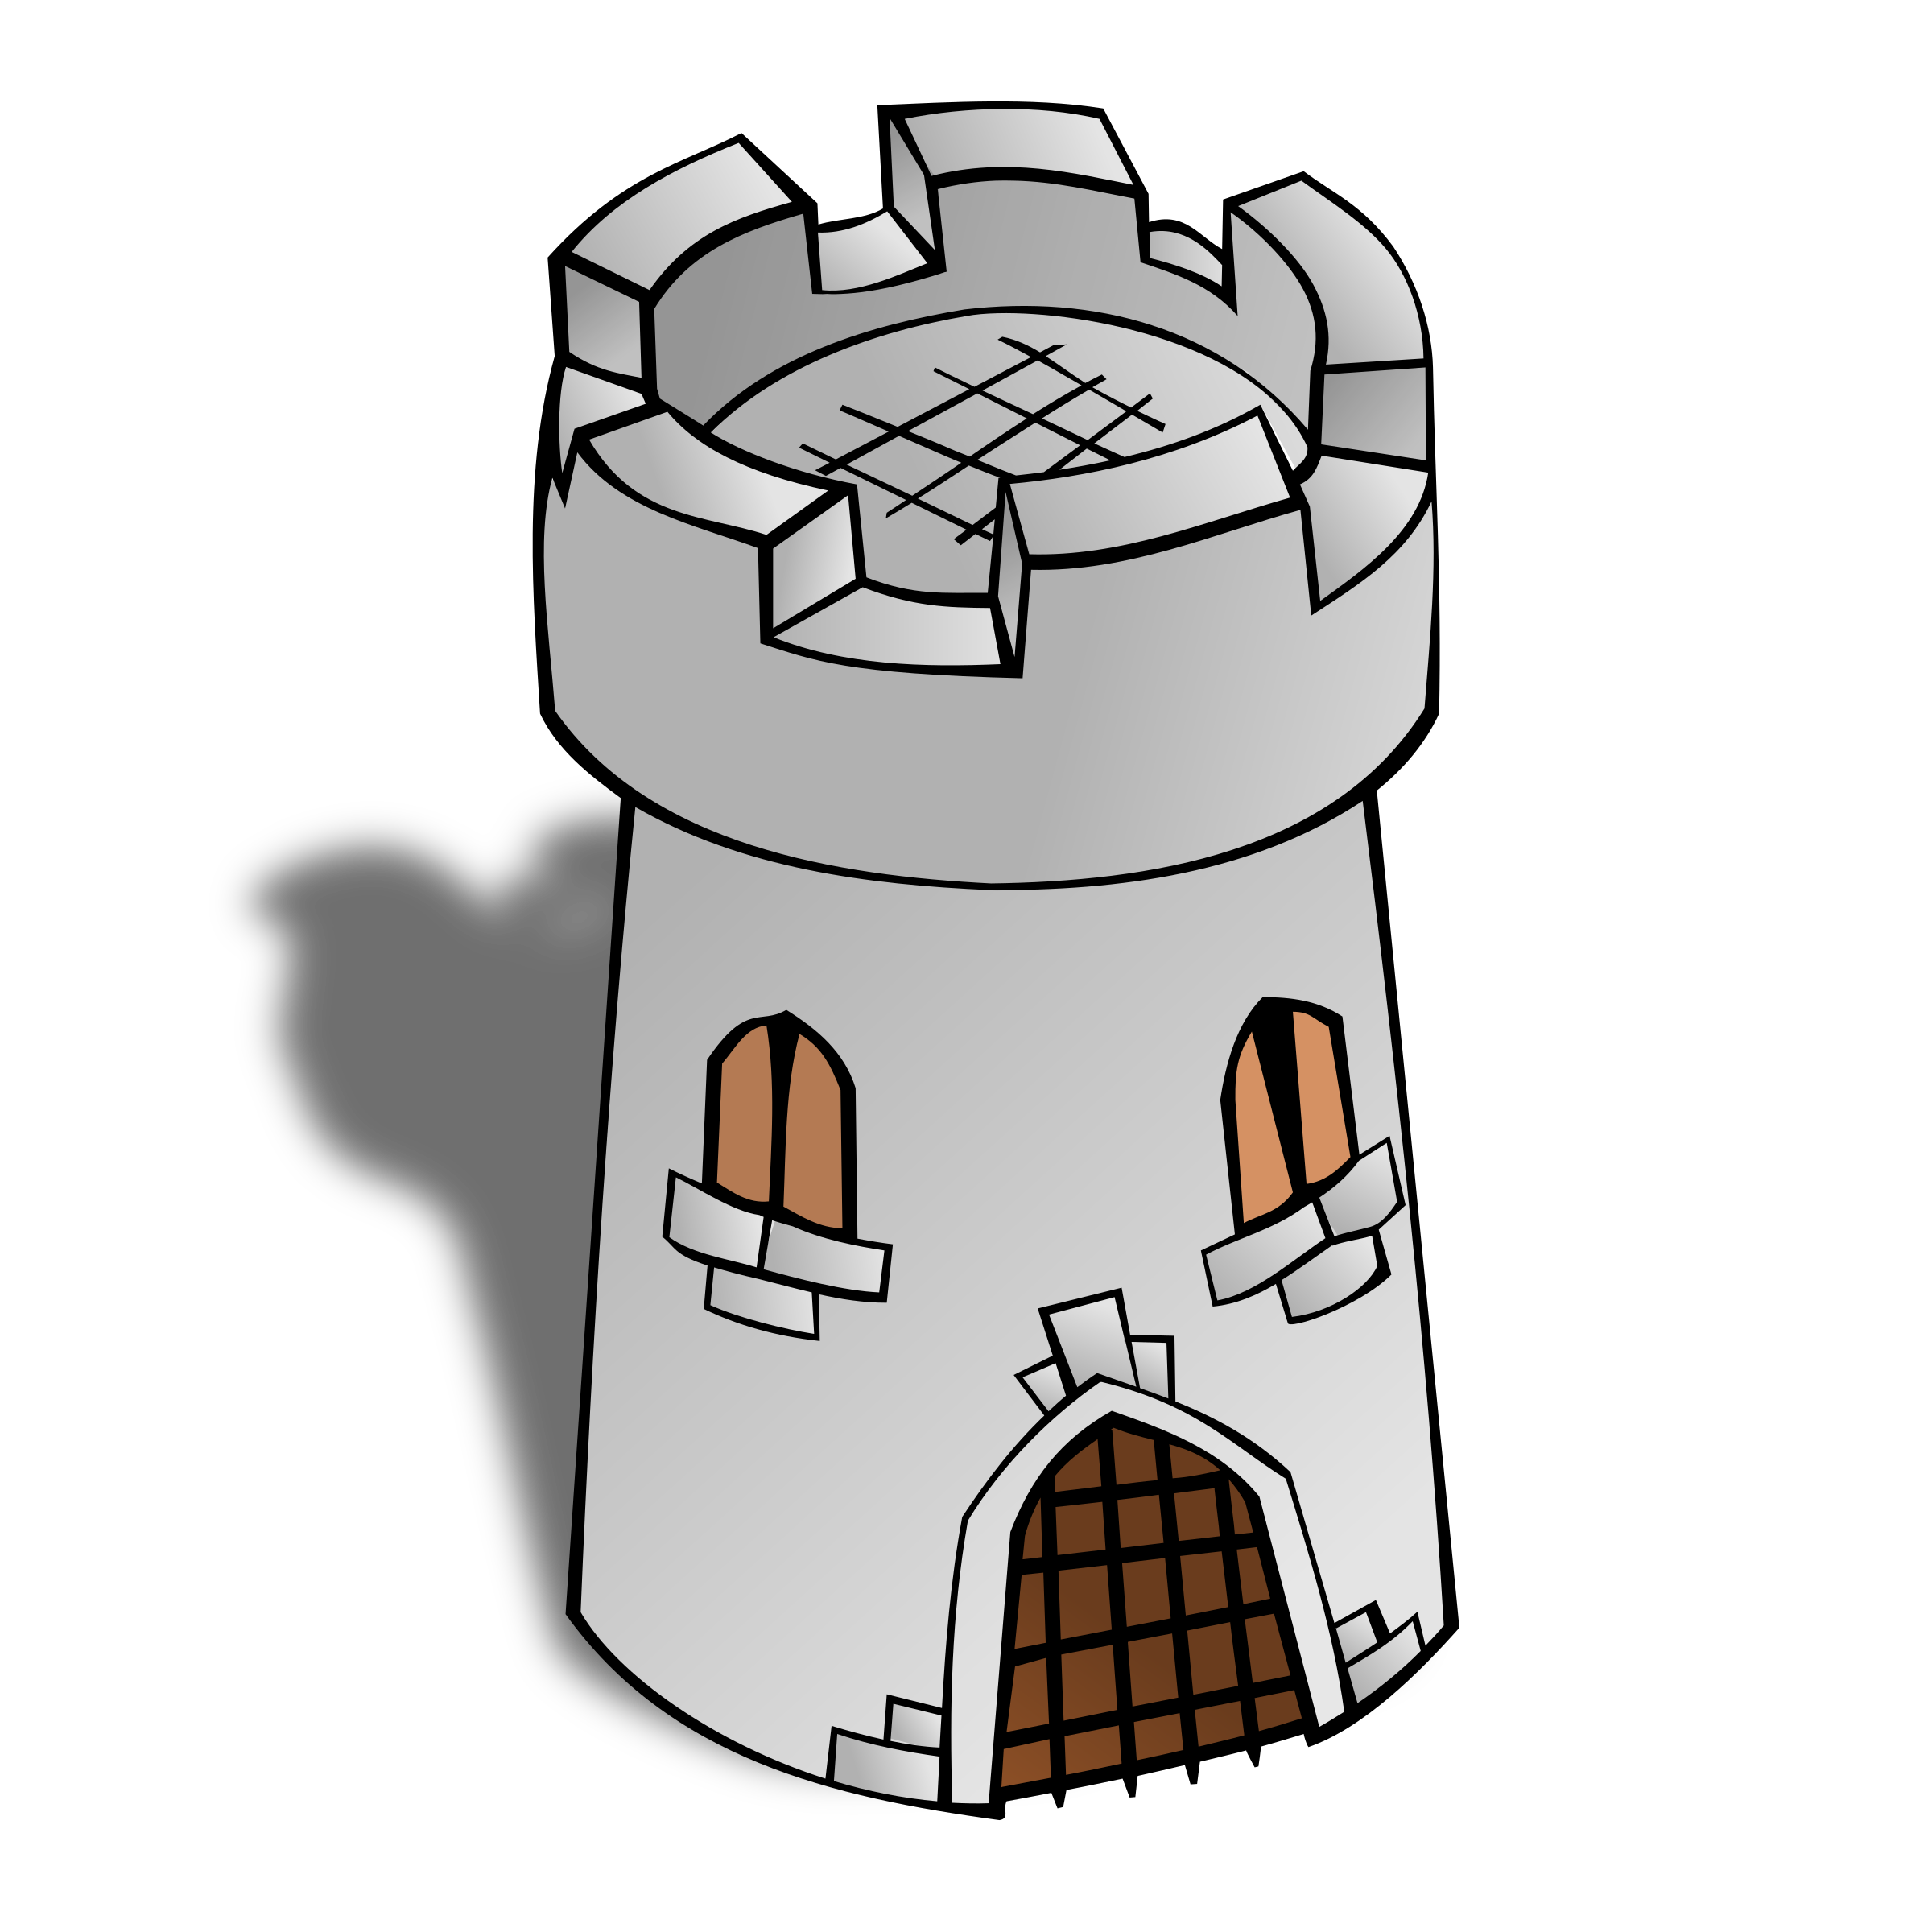 Tower clipart svg. Rpg map symbols round